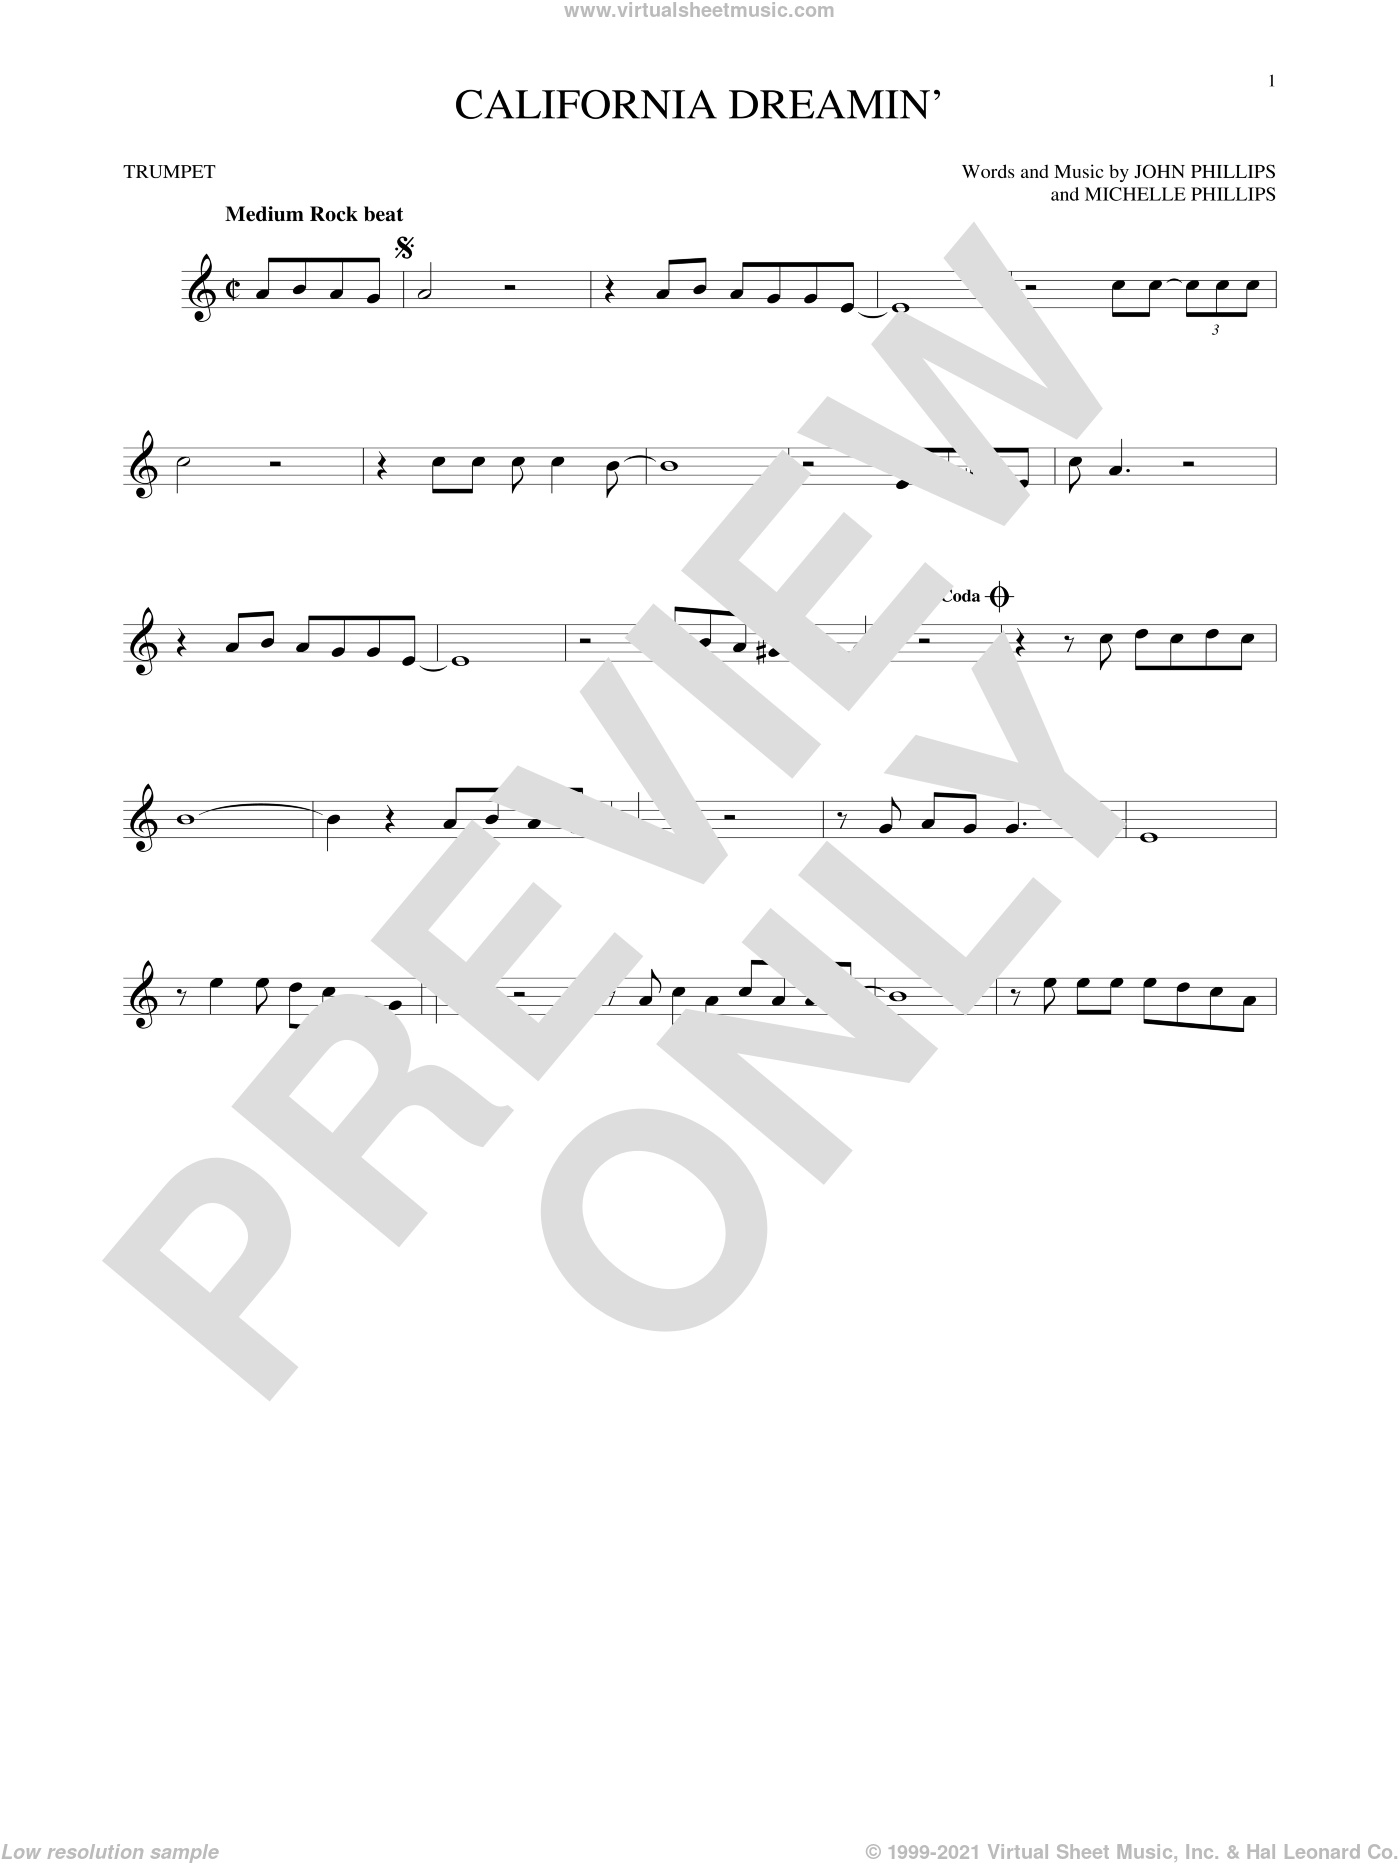 California Dreamin' sheet music for trumpet solo by The Mamas & The Papas, John Phillips and Michelle Phillips, intermediate skill level